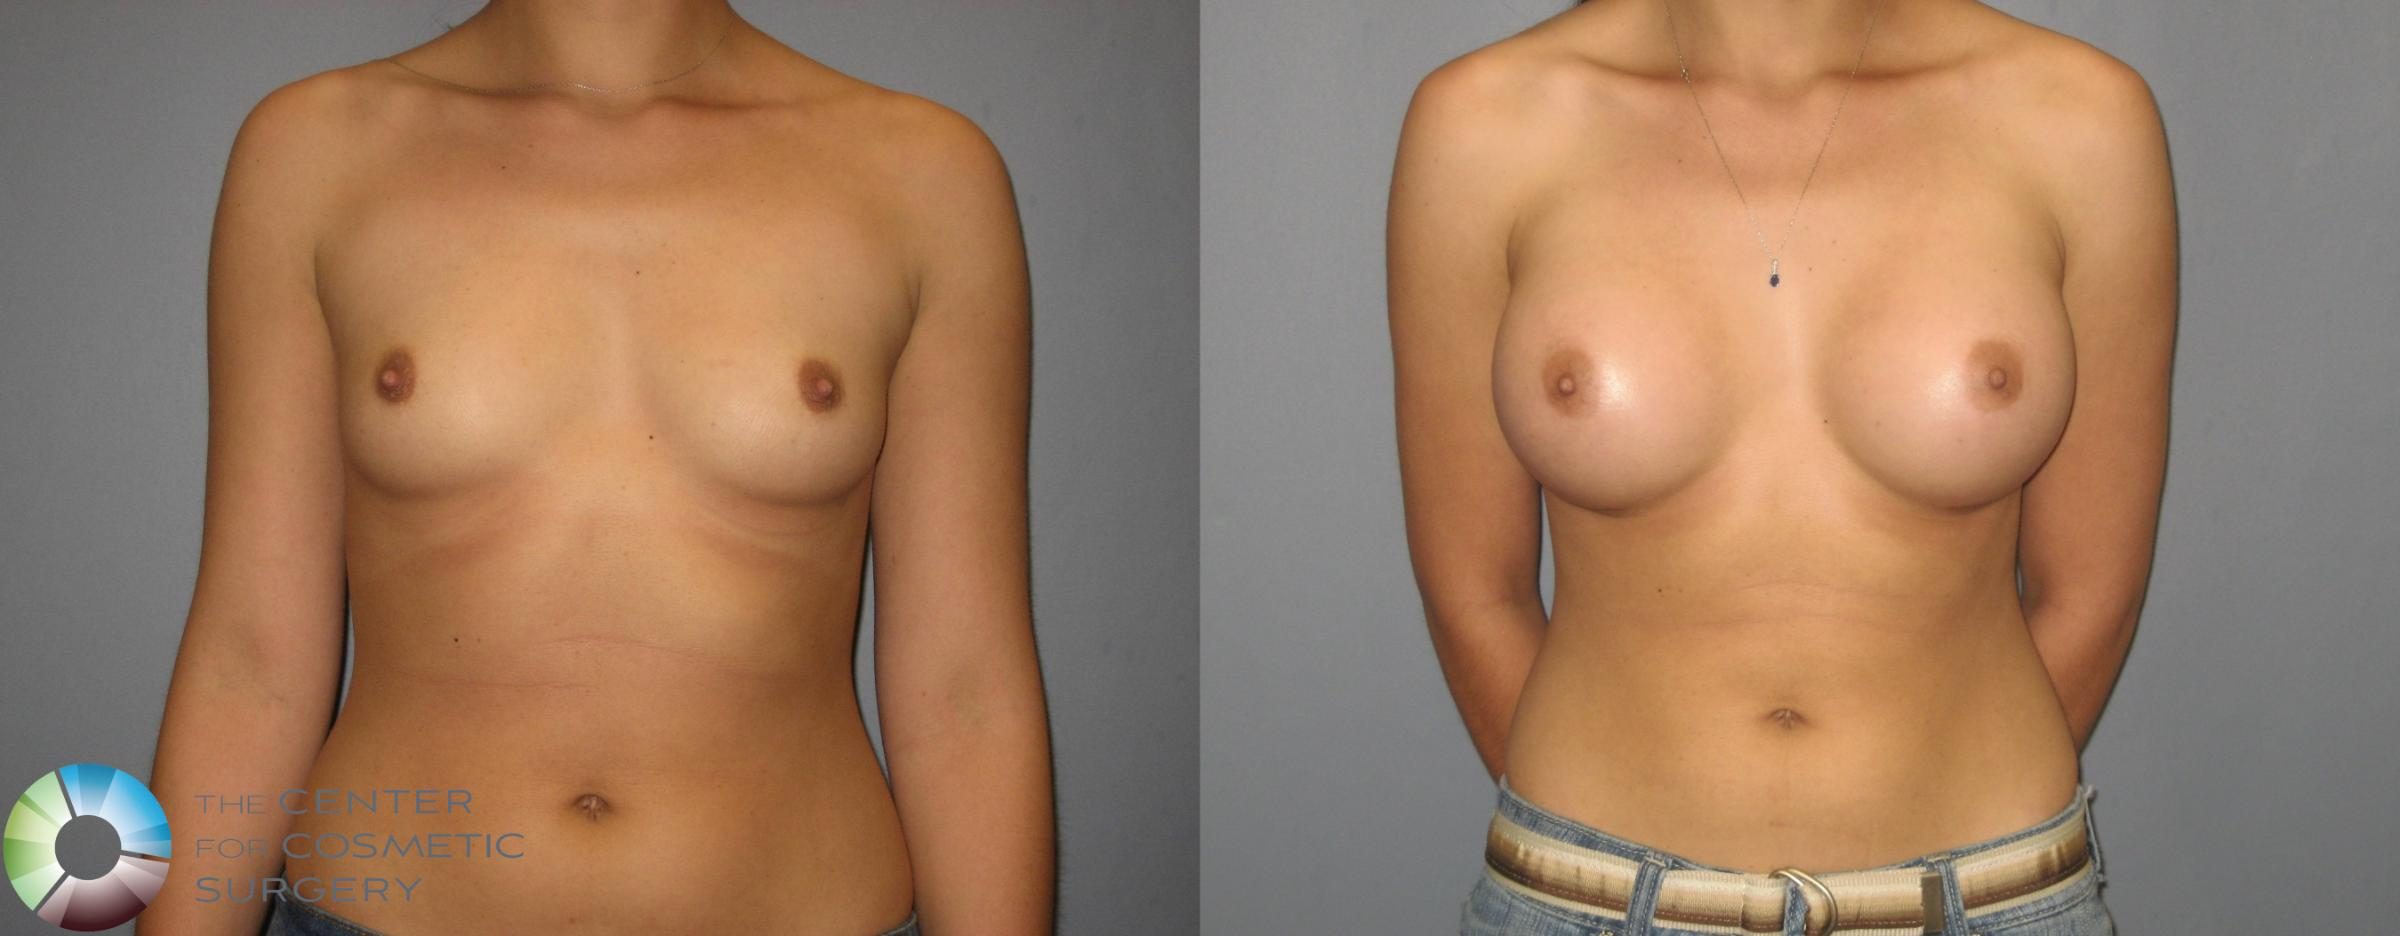 Breast Augmentation Case 379 Before & After View #2 | Golden, CO | The Center for Cosmetic Surgery